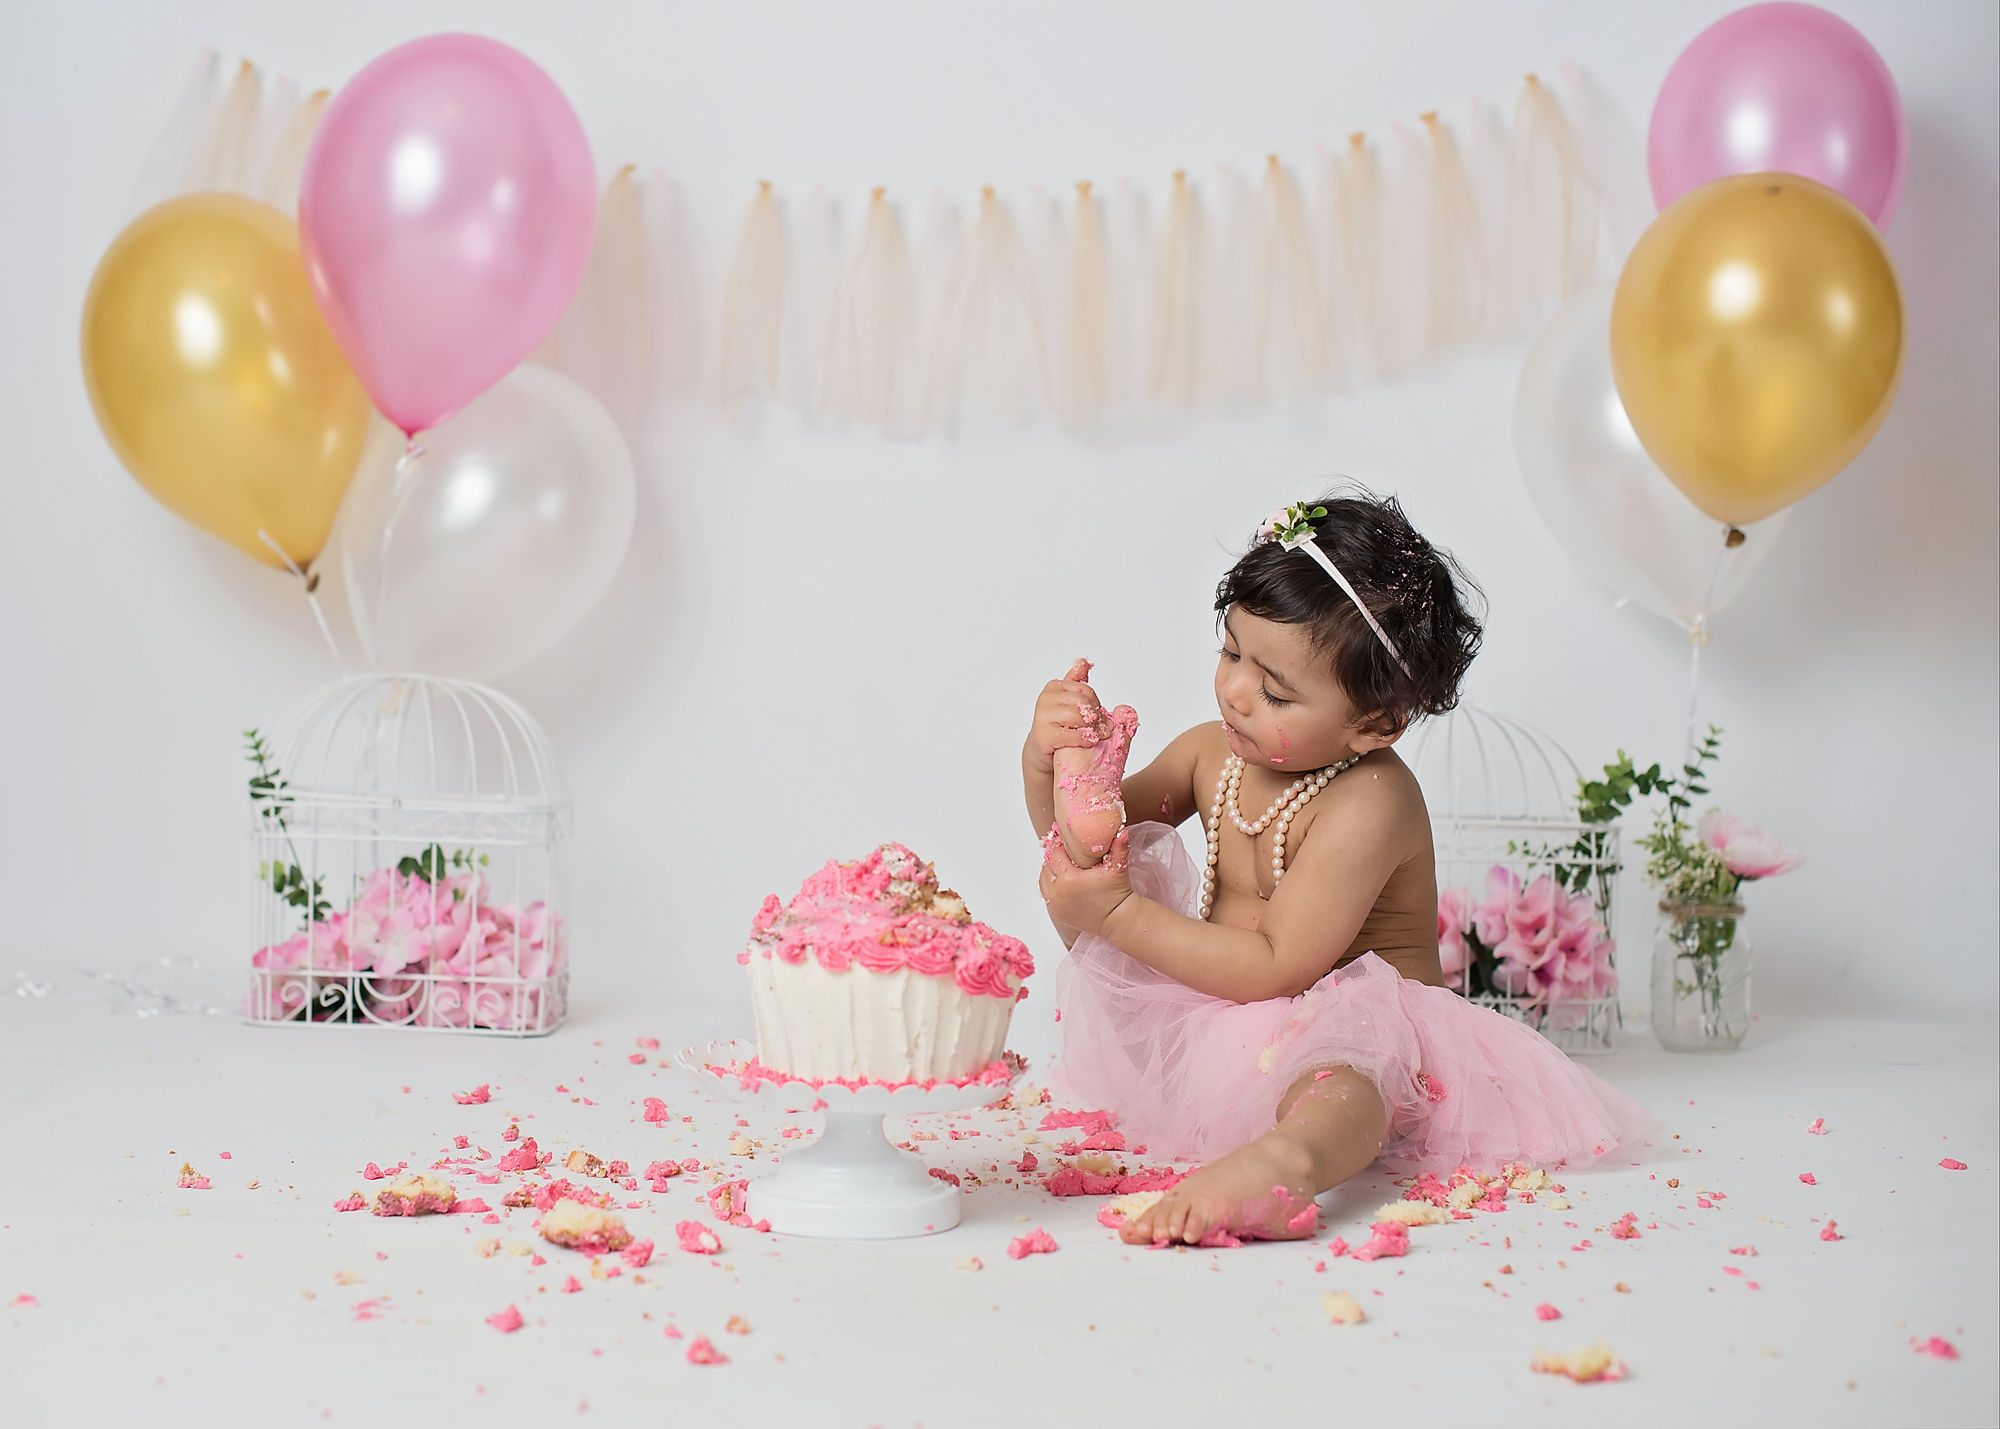 Cake Smash Is A New Way To Celebrate Your Baby S First Birthday